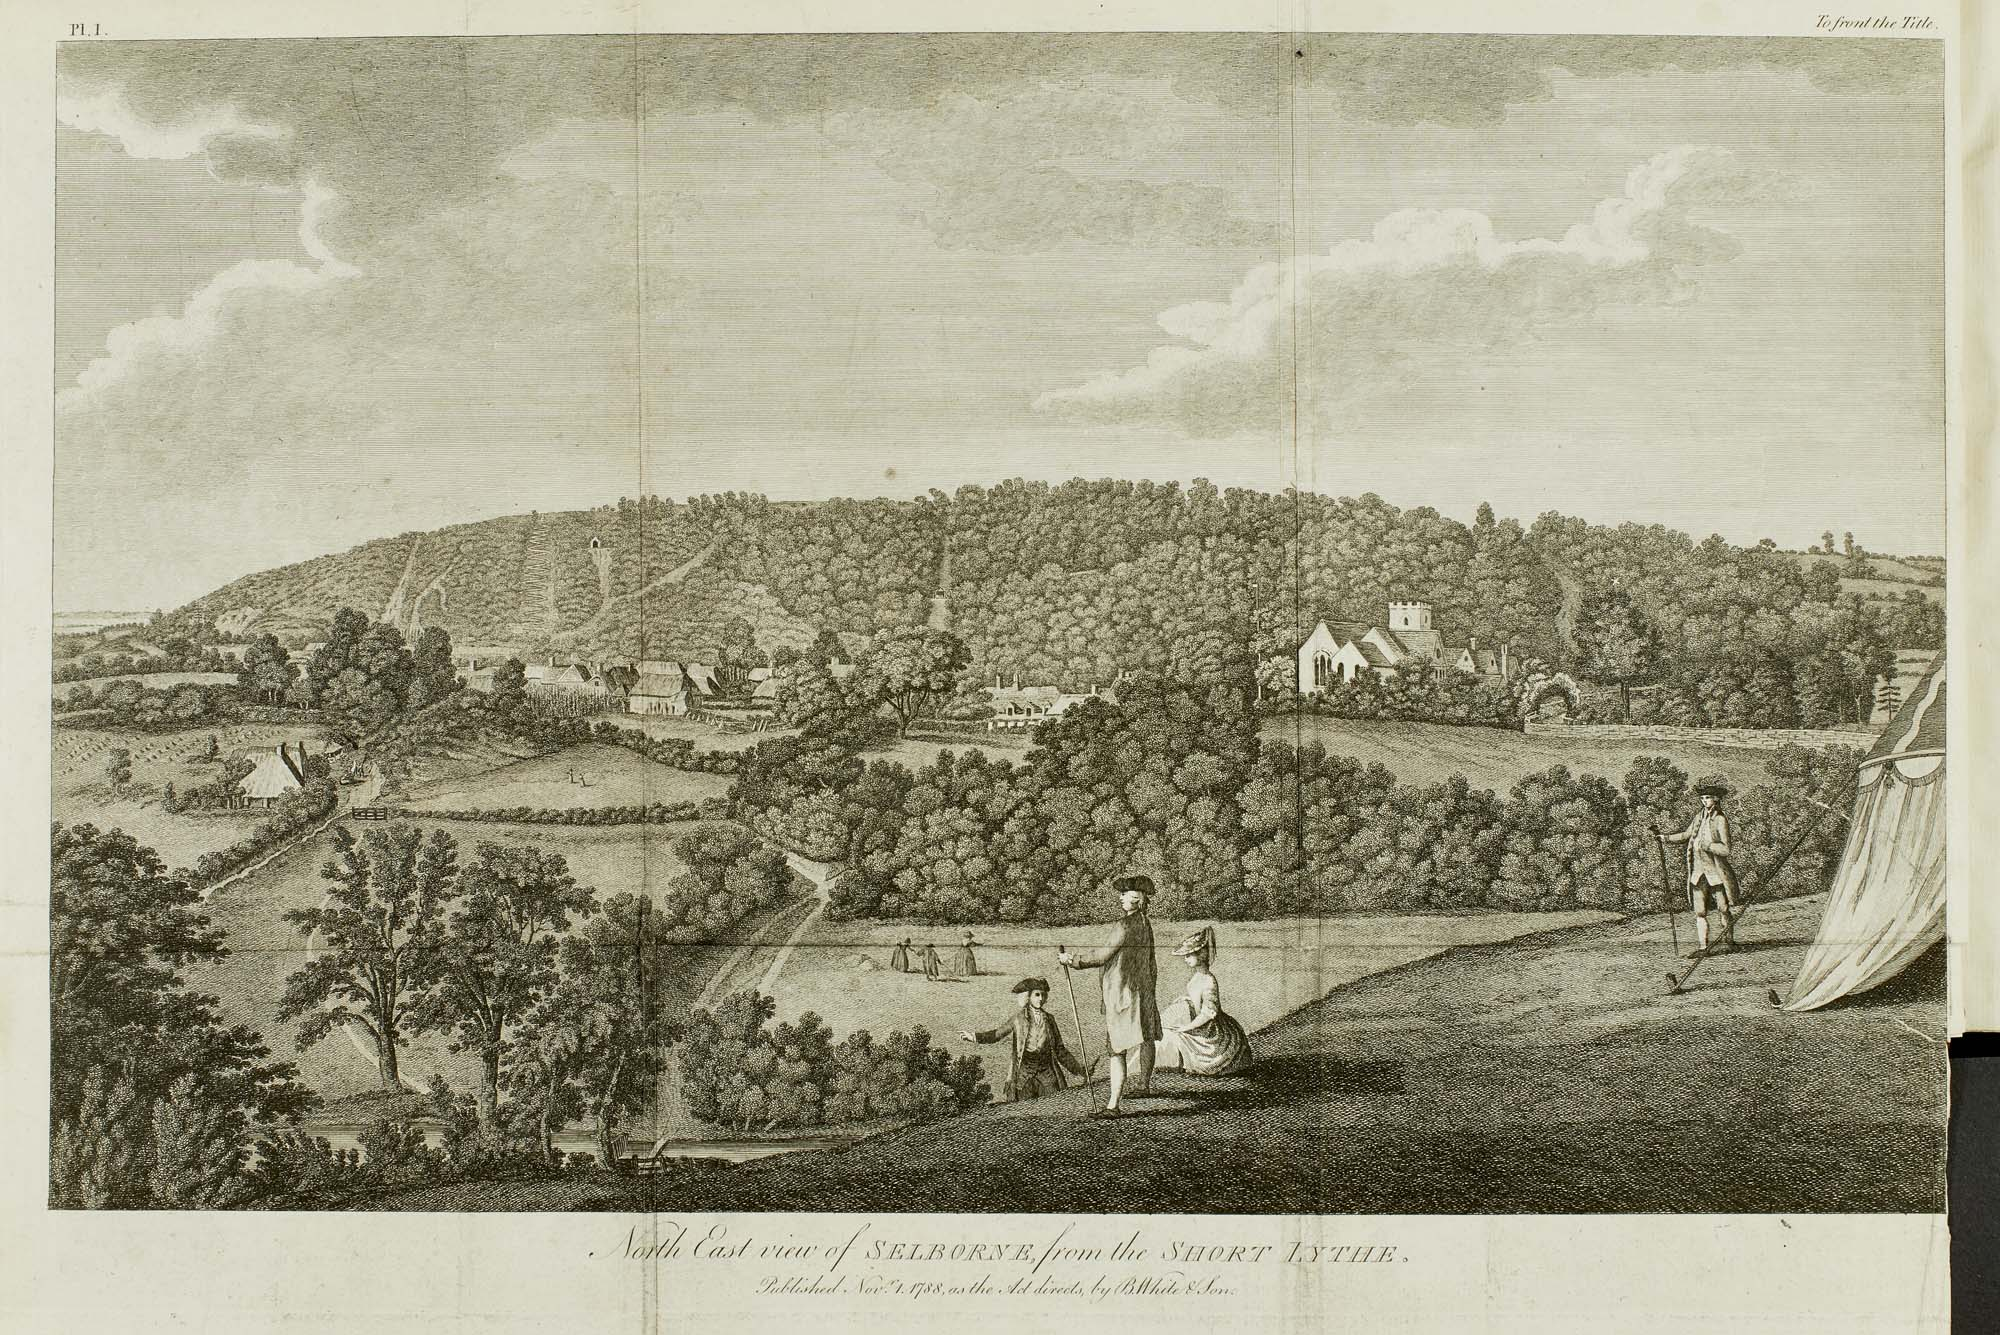 a print of a view across fields and wooded hillsides